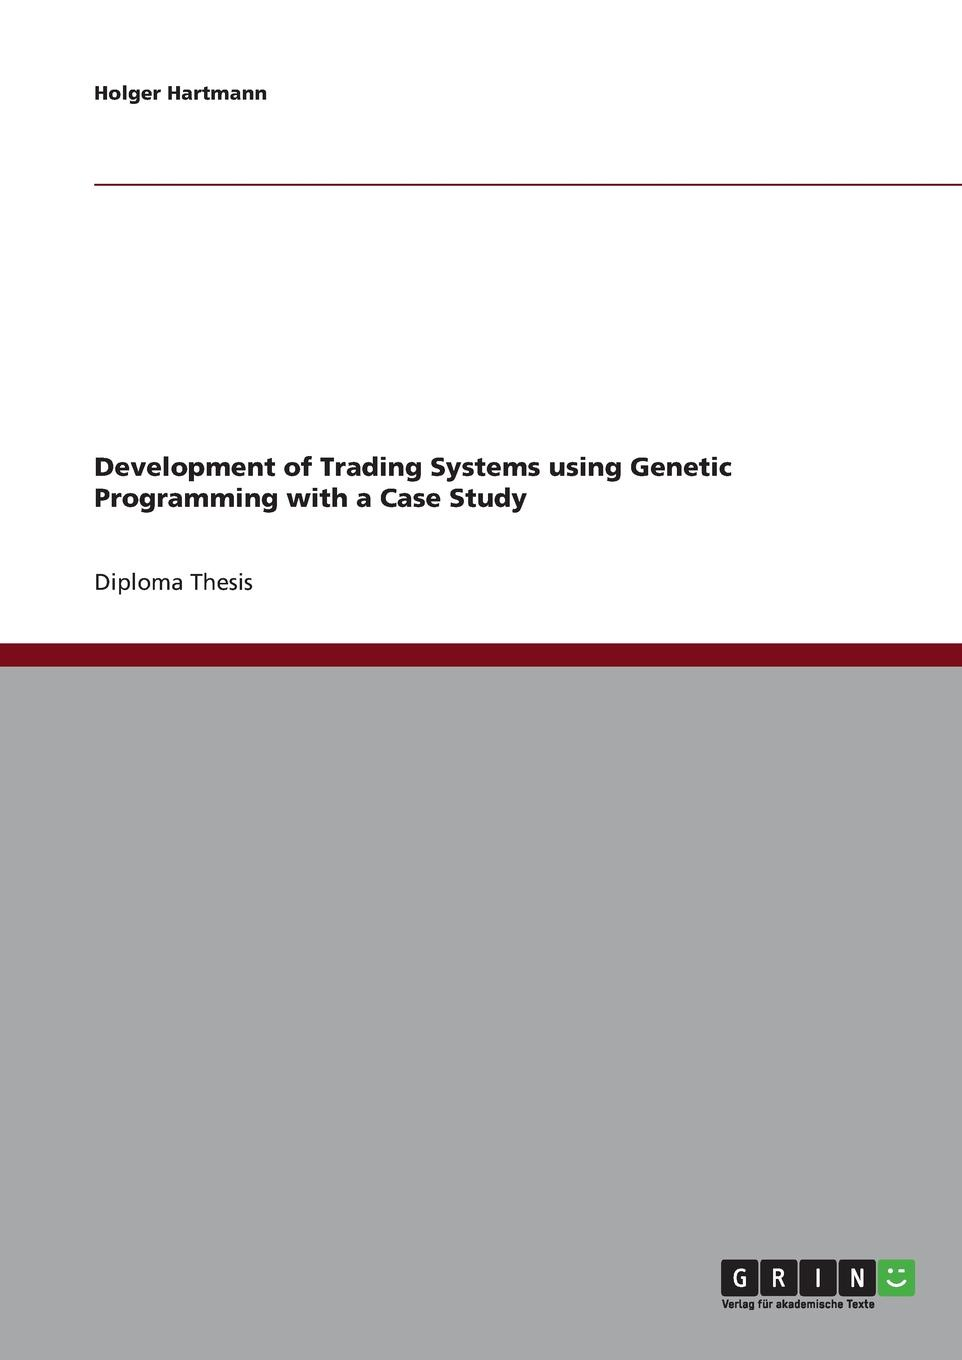 Holger Hartmann Development of Trading Systems using Genetic Programming with a Case Study george pruitt building winning trading systems with tradestation